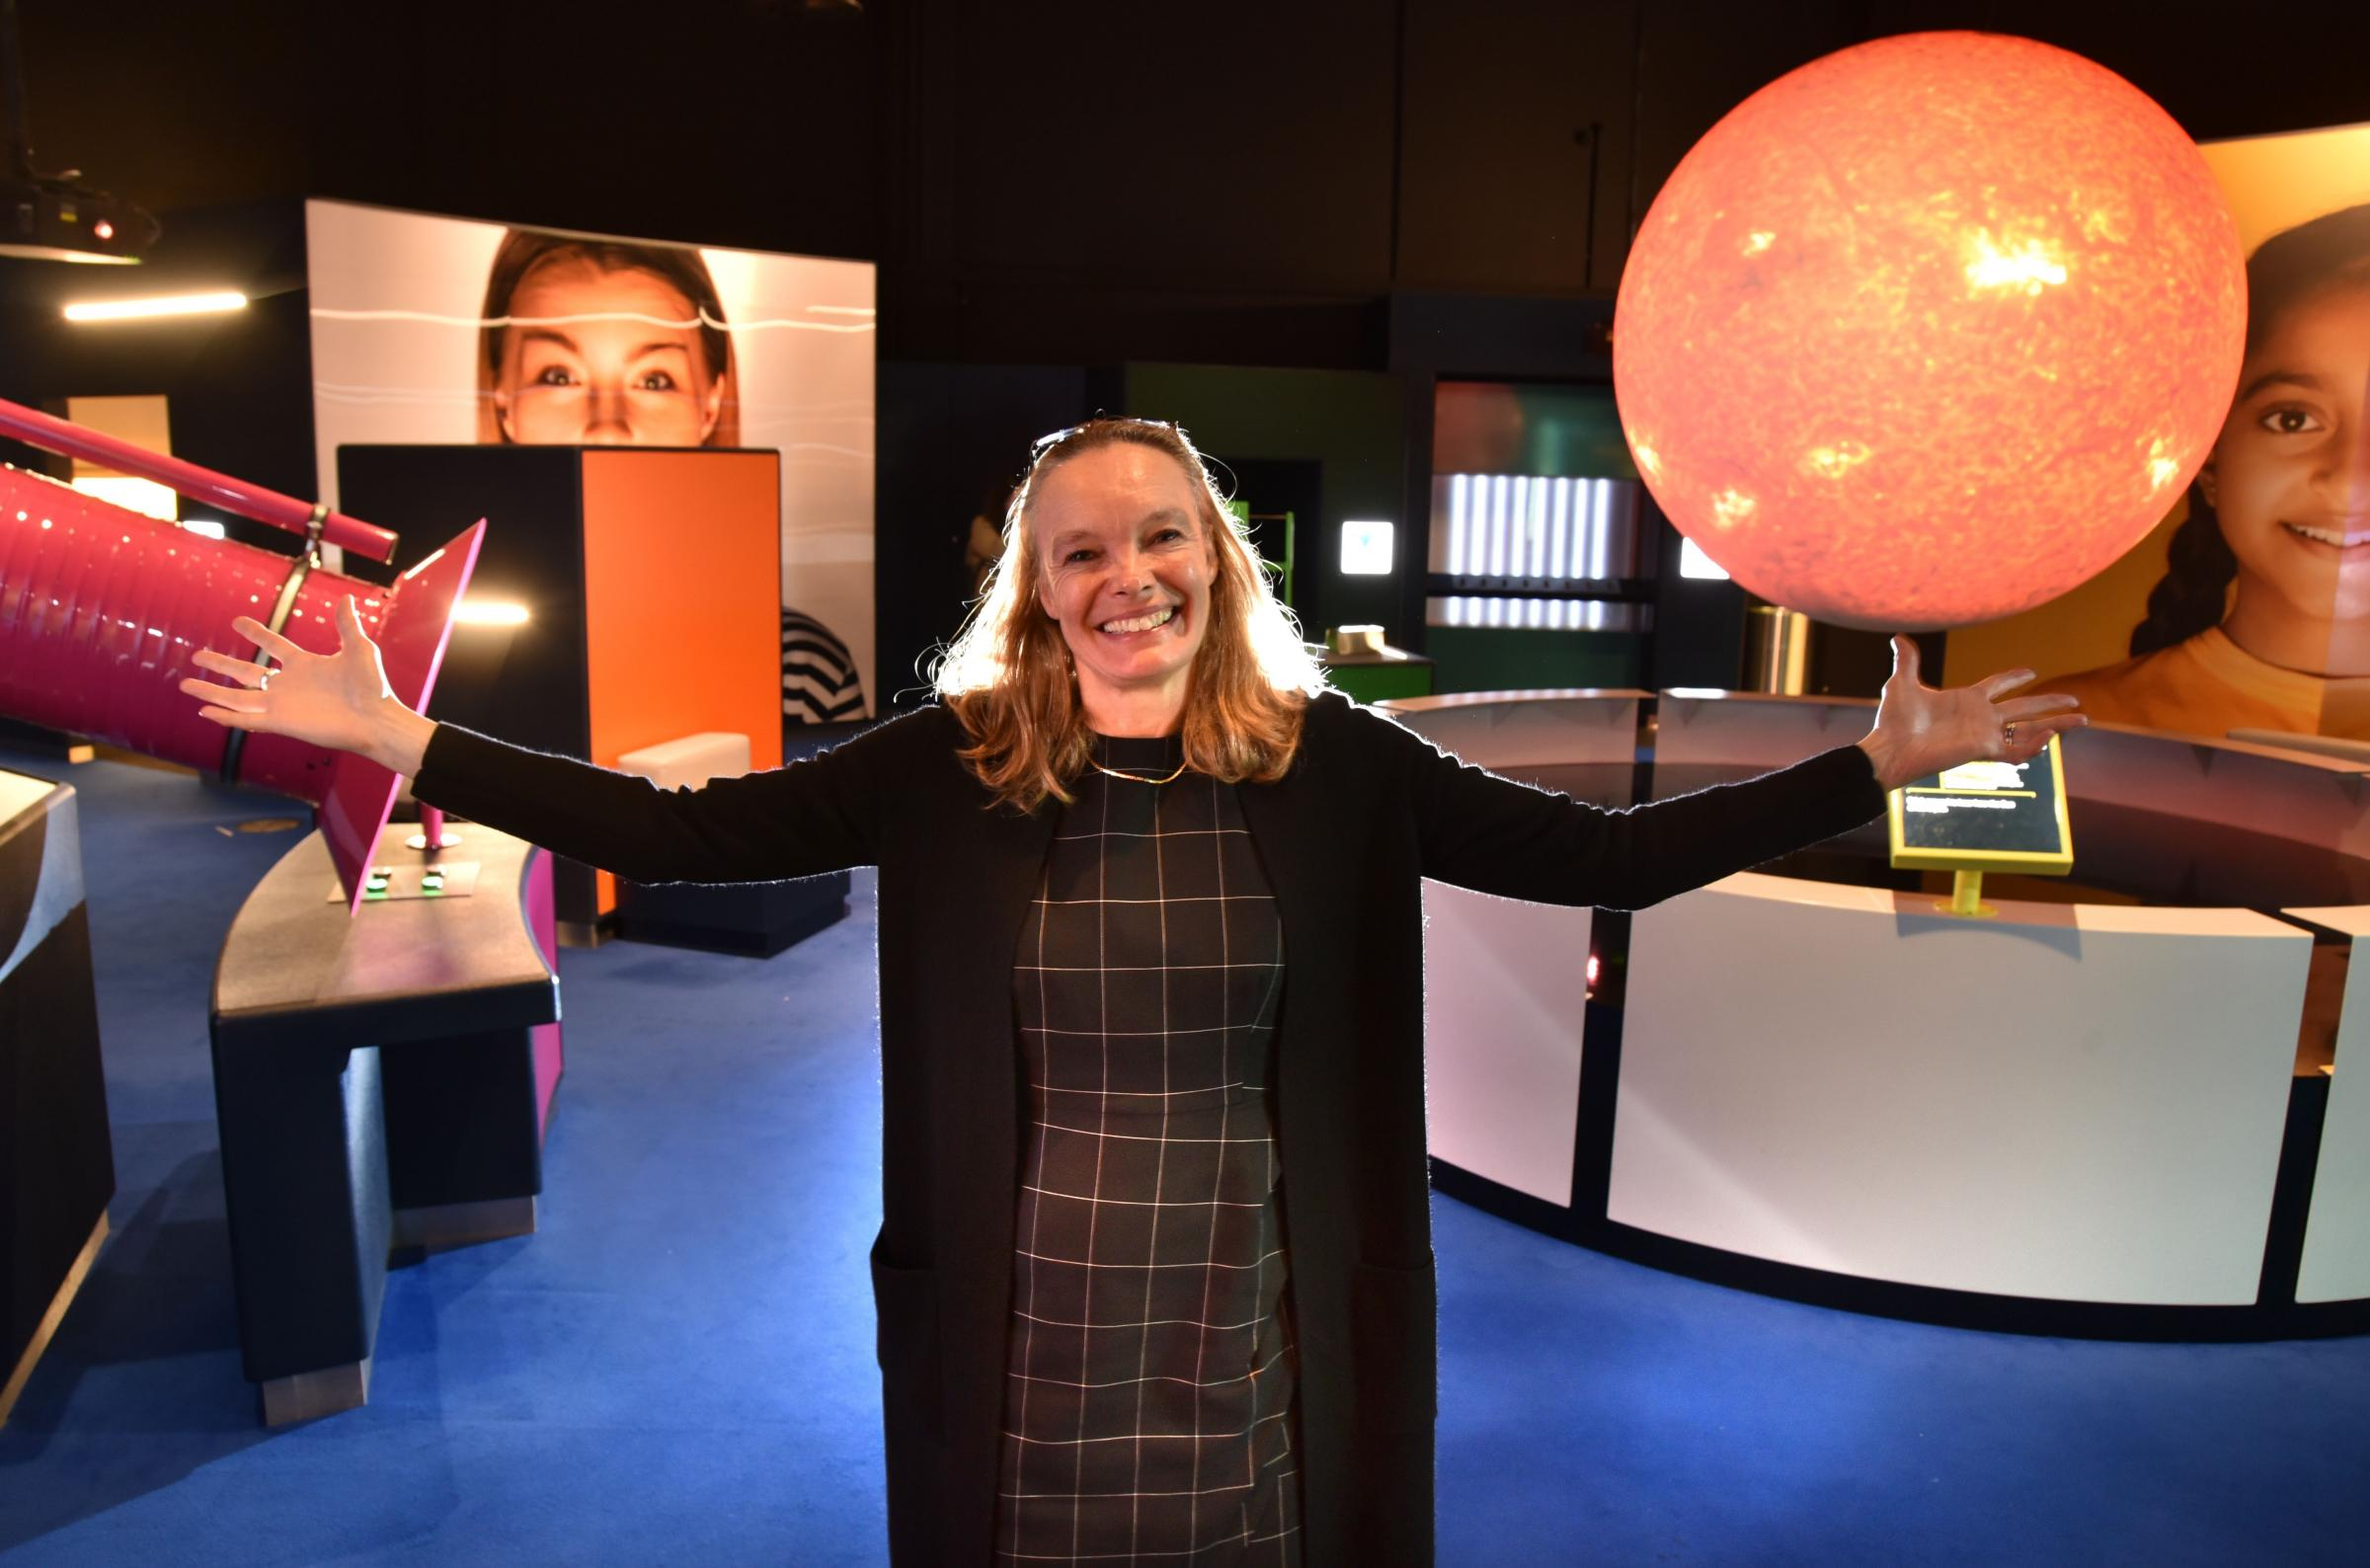 Jo Quinton-Tulloch, director of the National Science and Media Museum, in the Wonderlab.